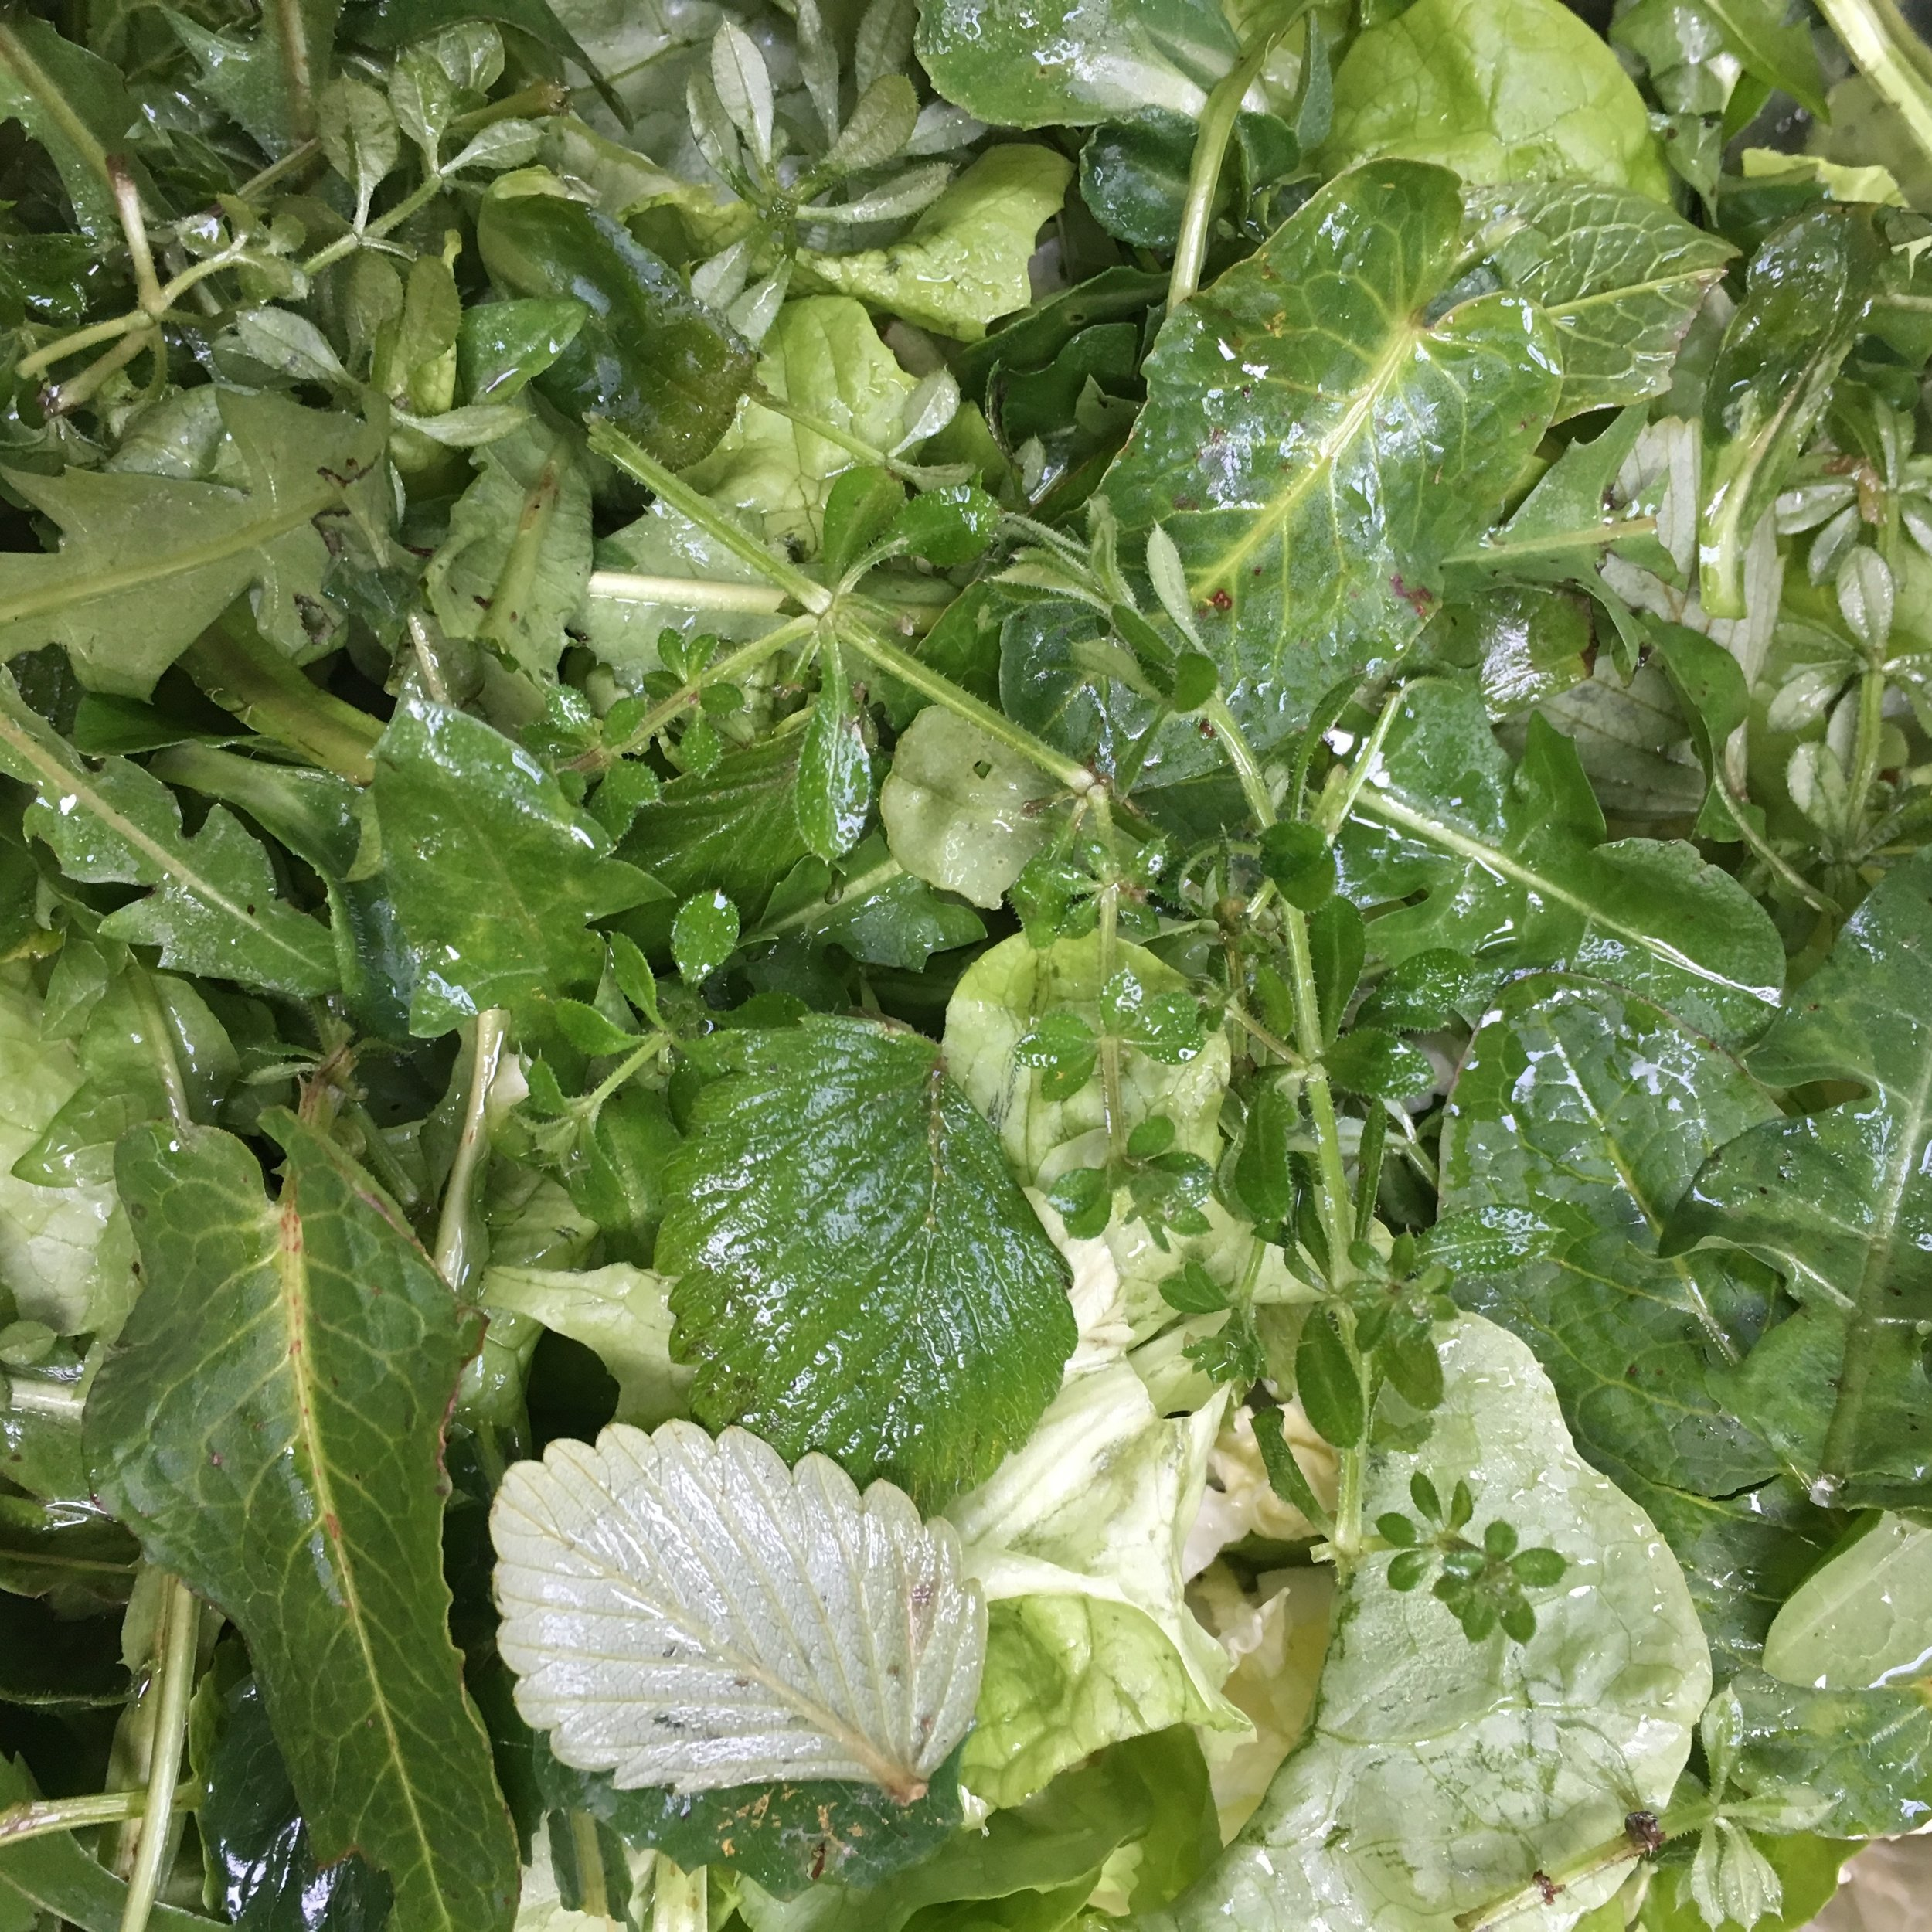 Wintery salad containing cleavers shoots, wild strawberry leaves and dandelion, amongst other things.